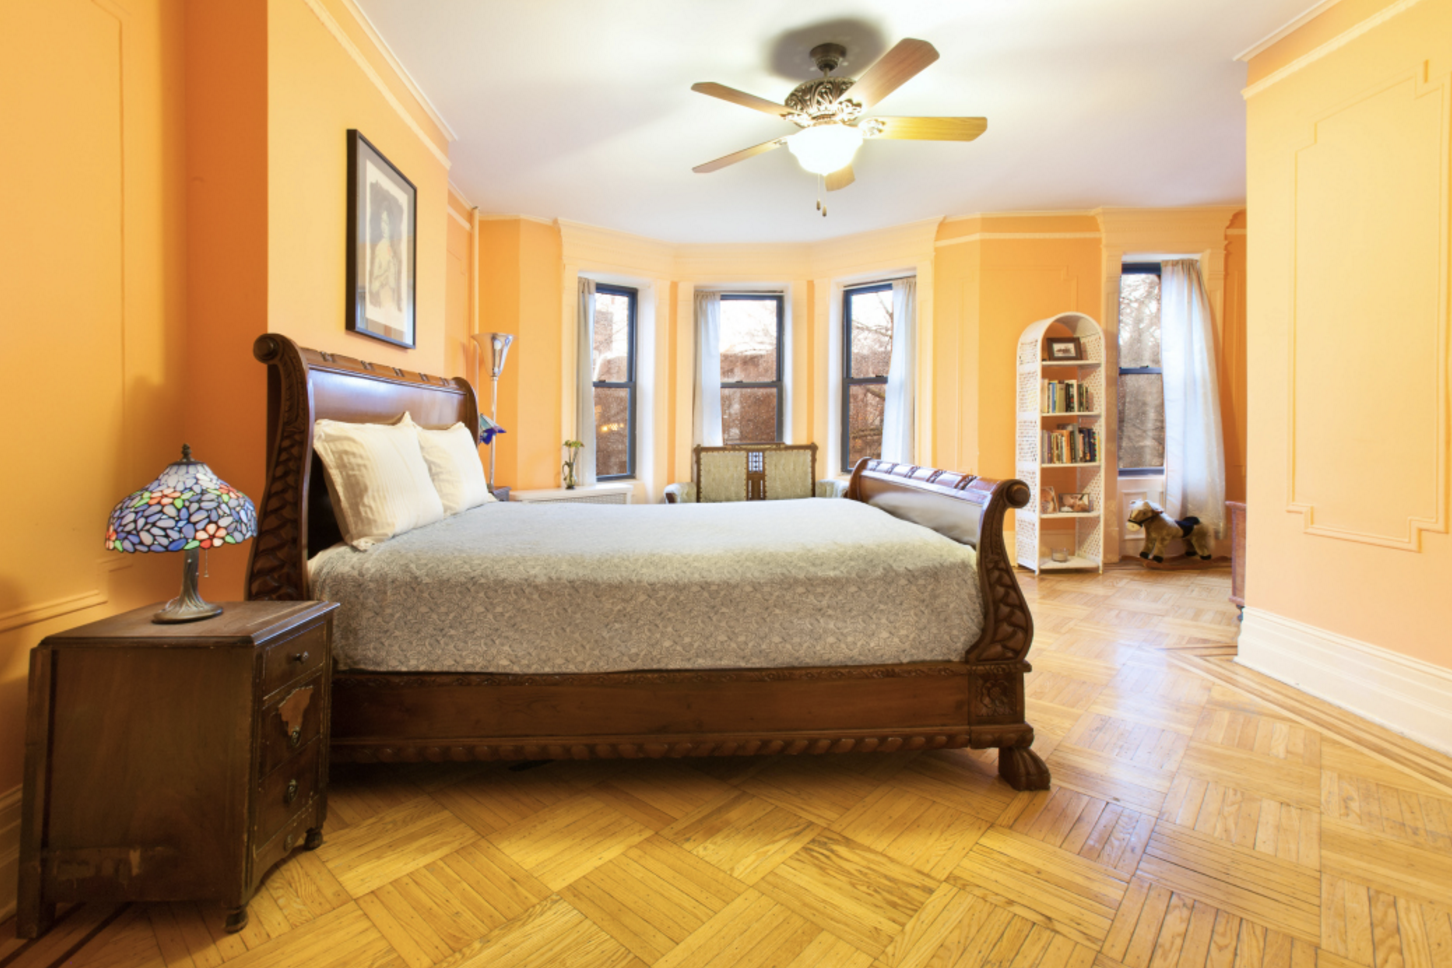 829 Lincoln pace - $1,795,000 - Crown Heights